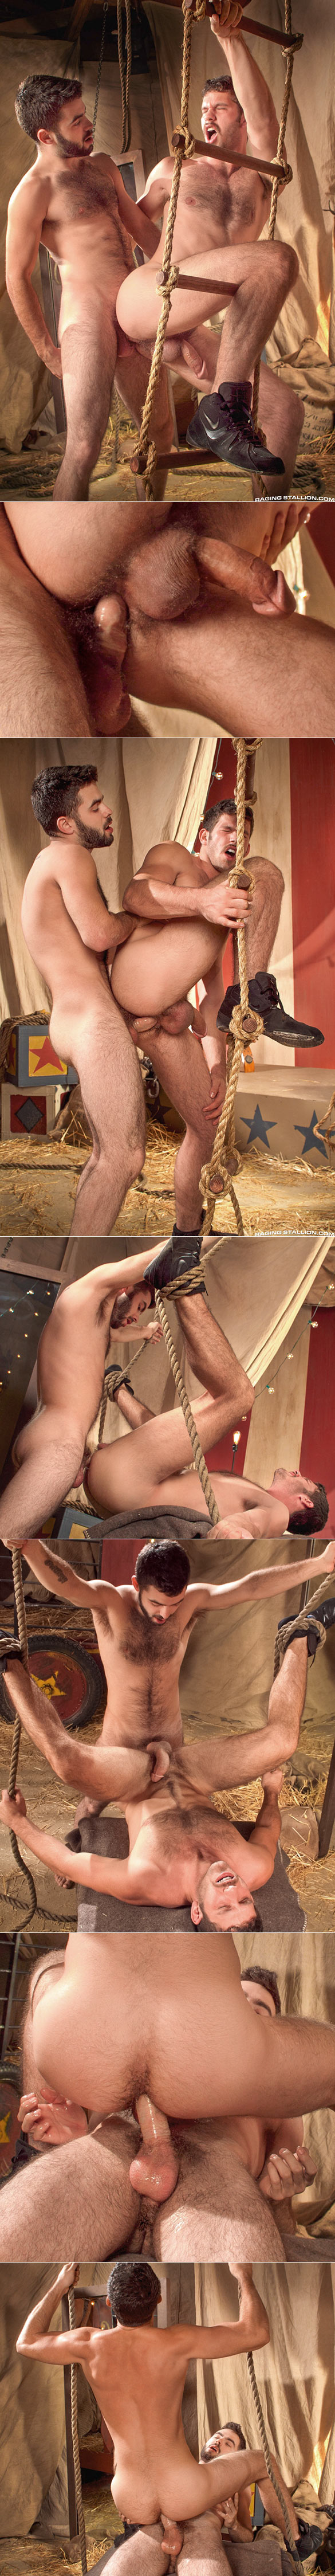 "Raging Stallion: Josh Long fucks Jimmy Fanz in ""Behind The Big Top"""